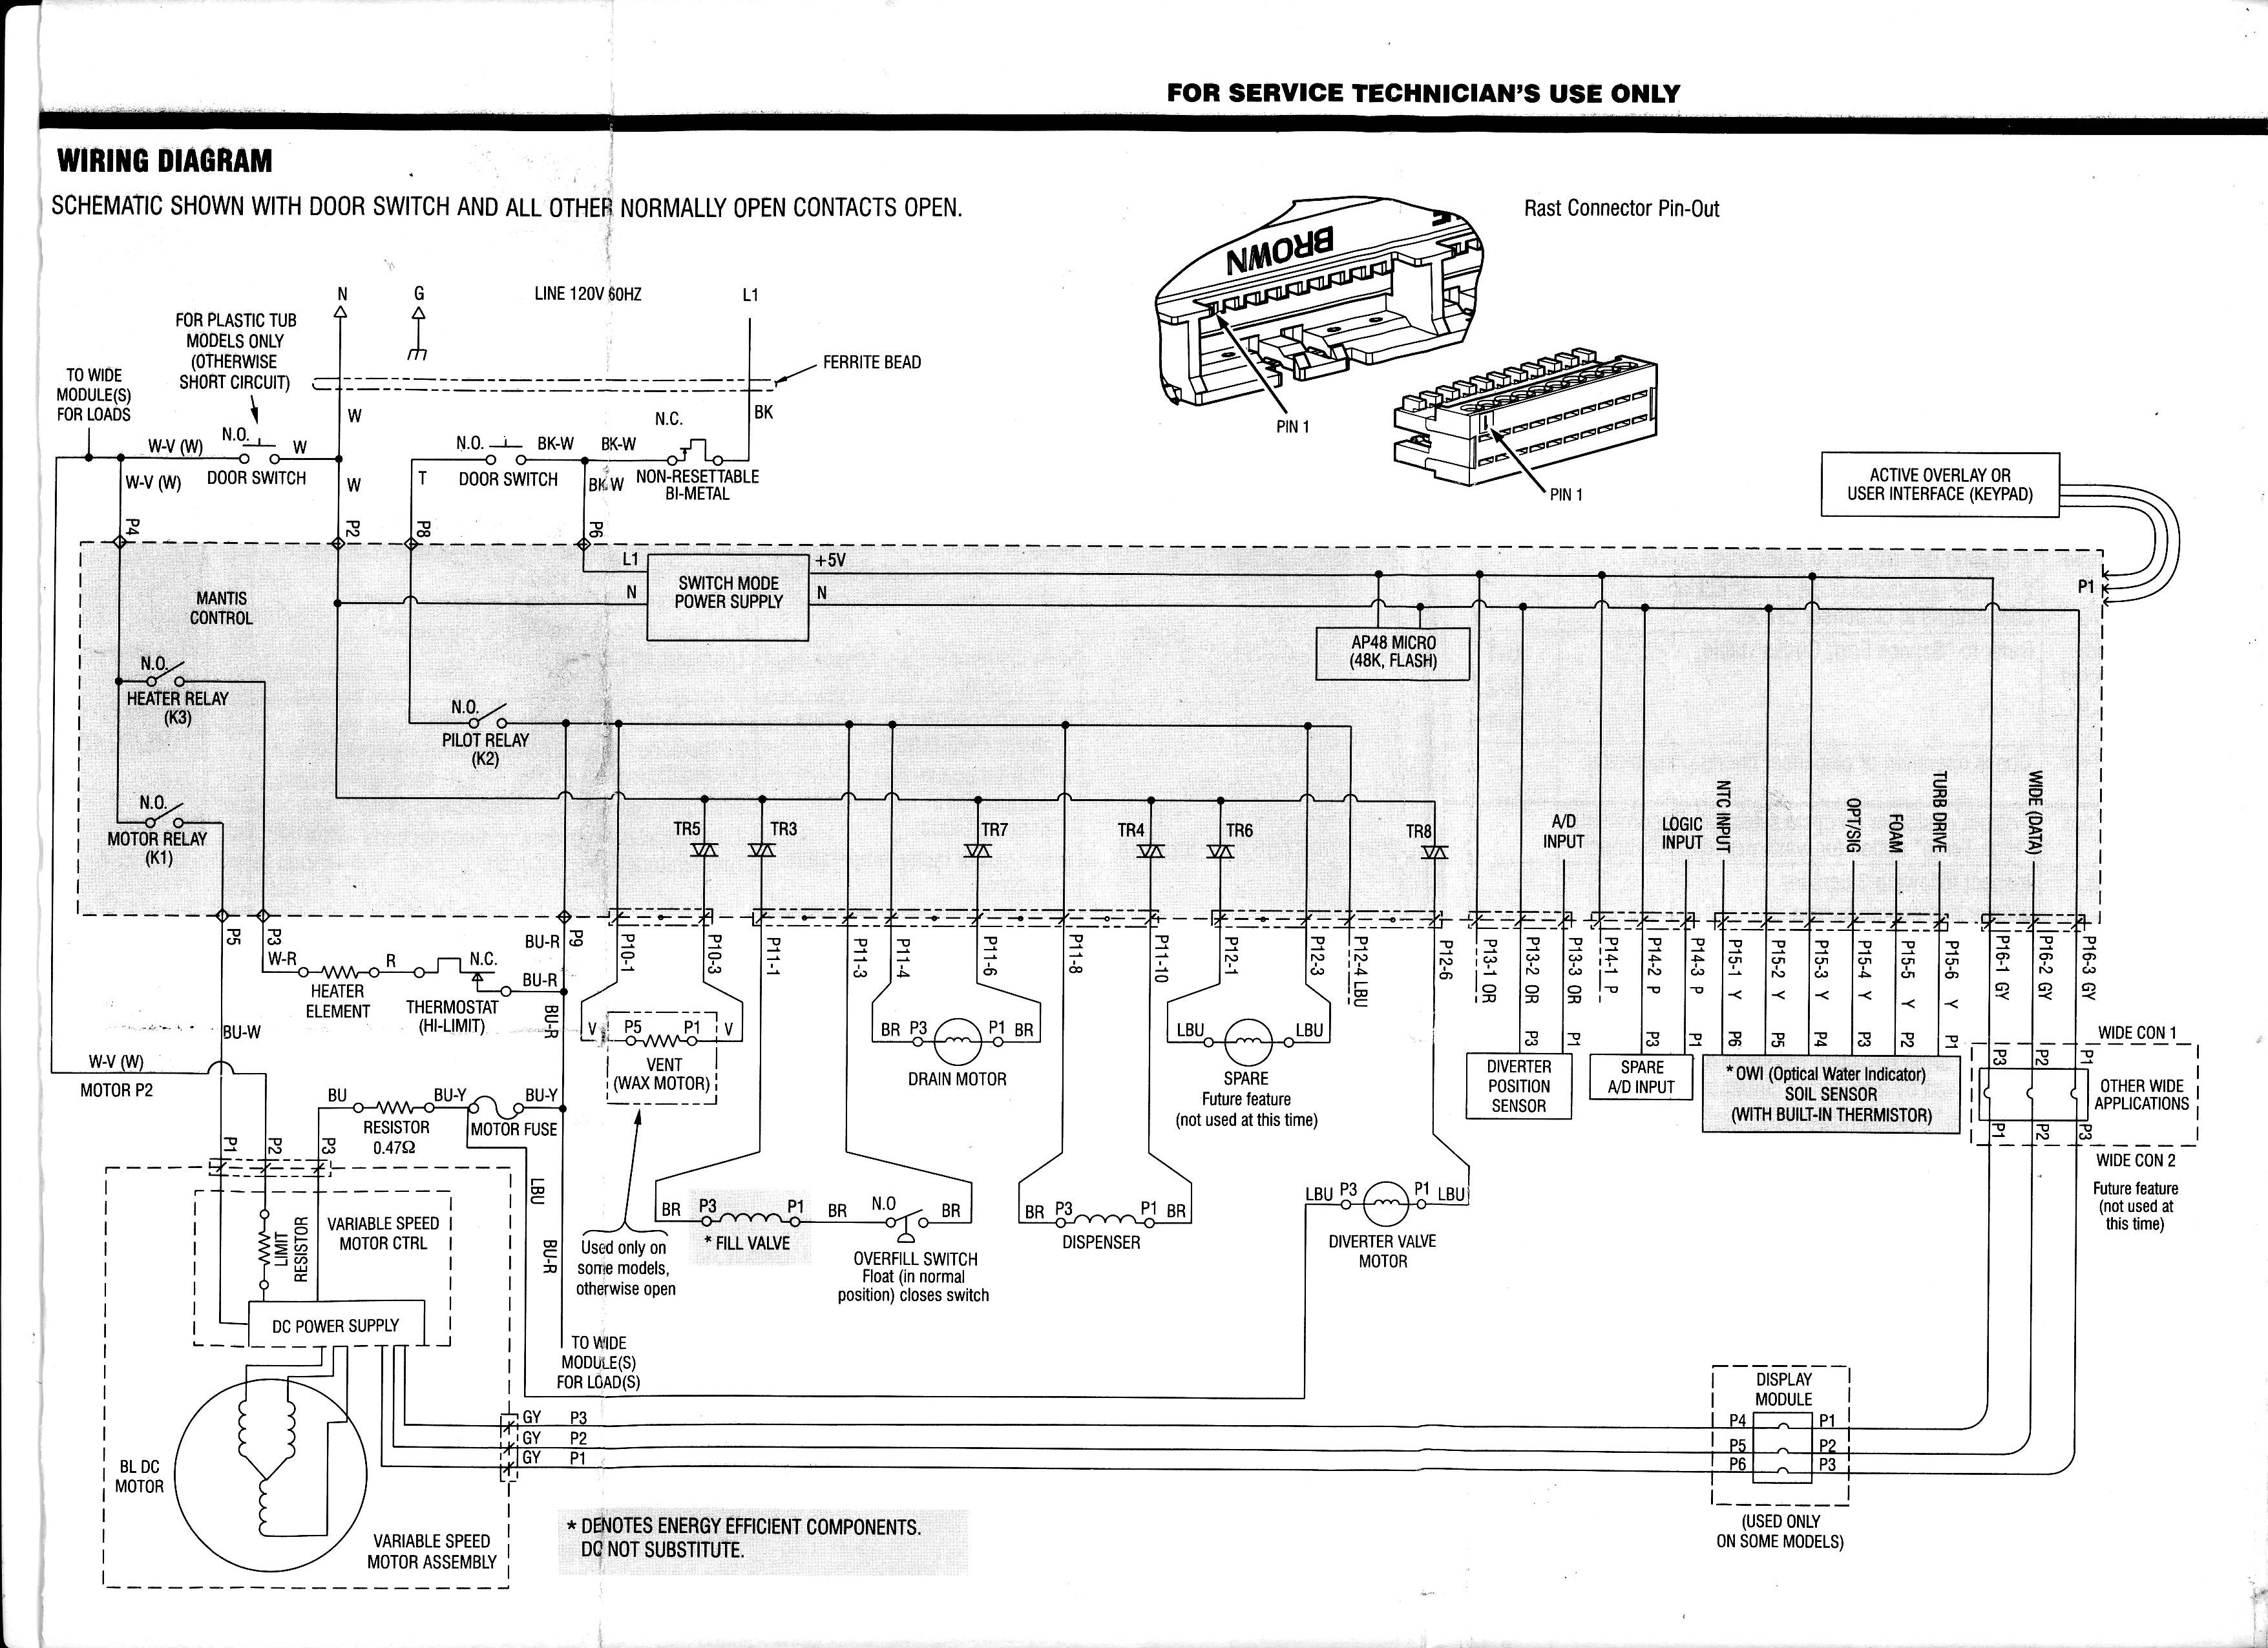 MWY Download Kenmore Dishwasher Motor Wiring Diagram Kindle